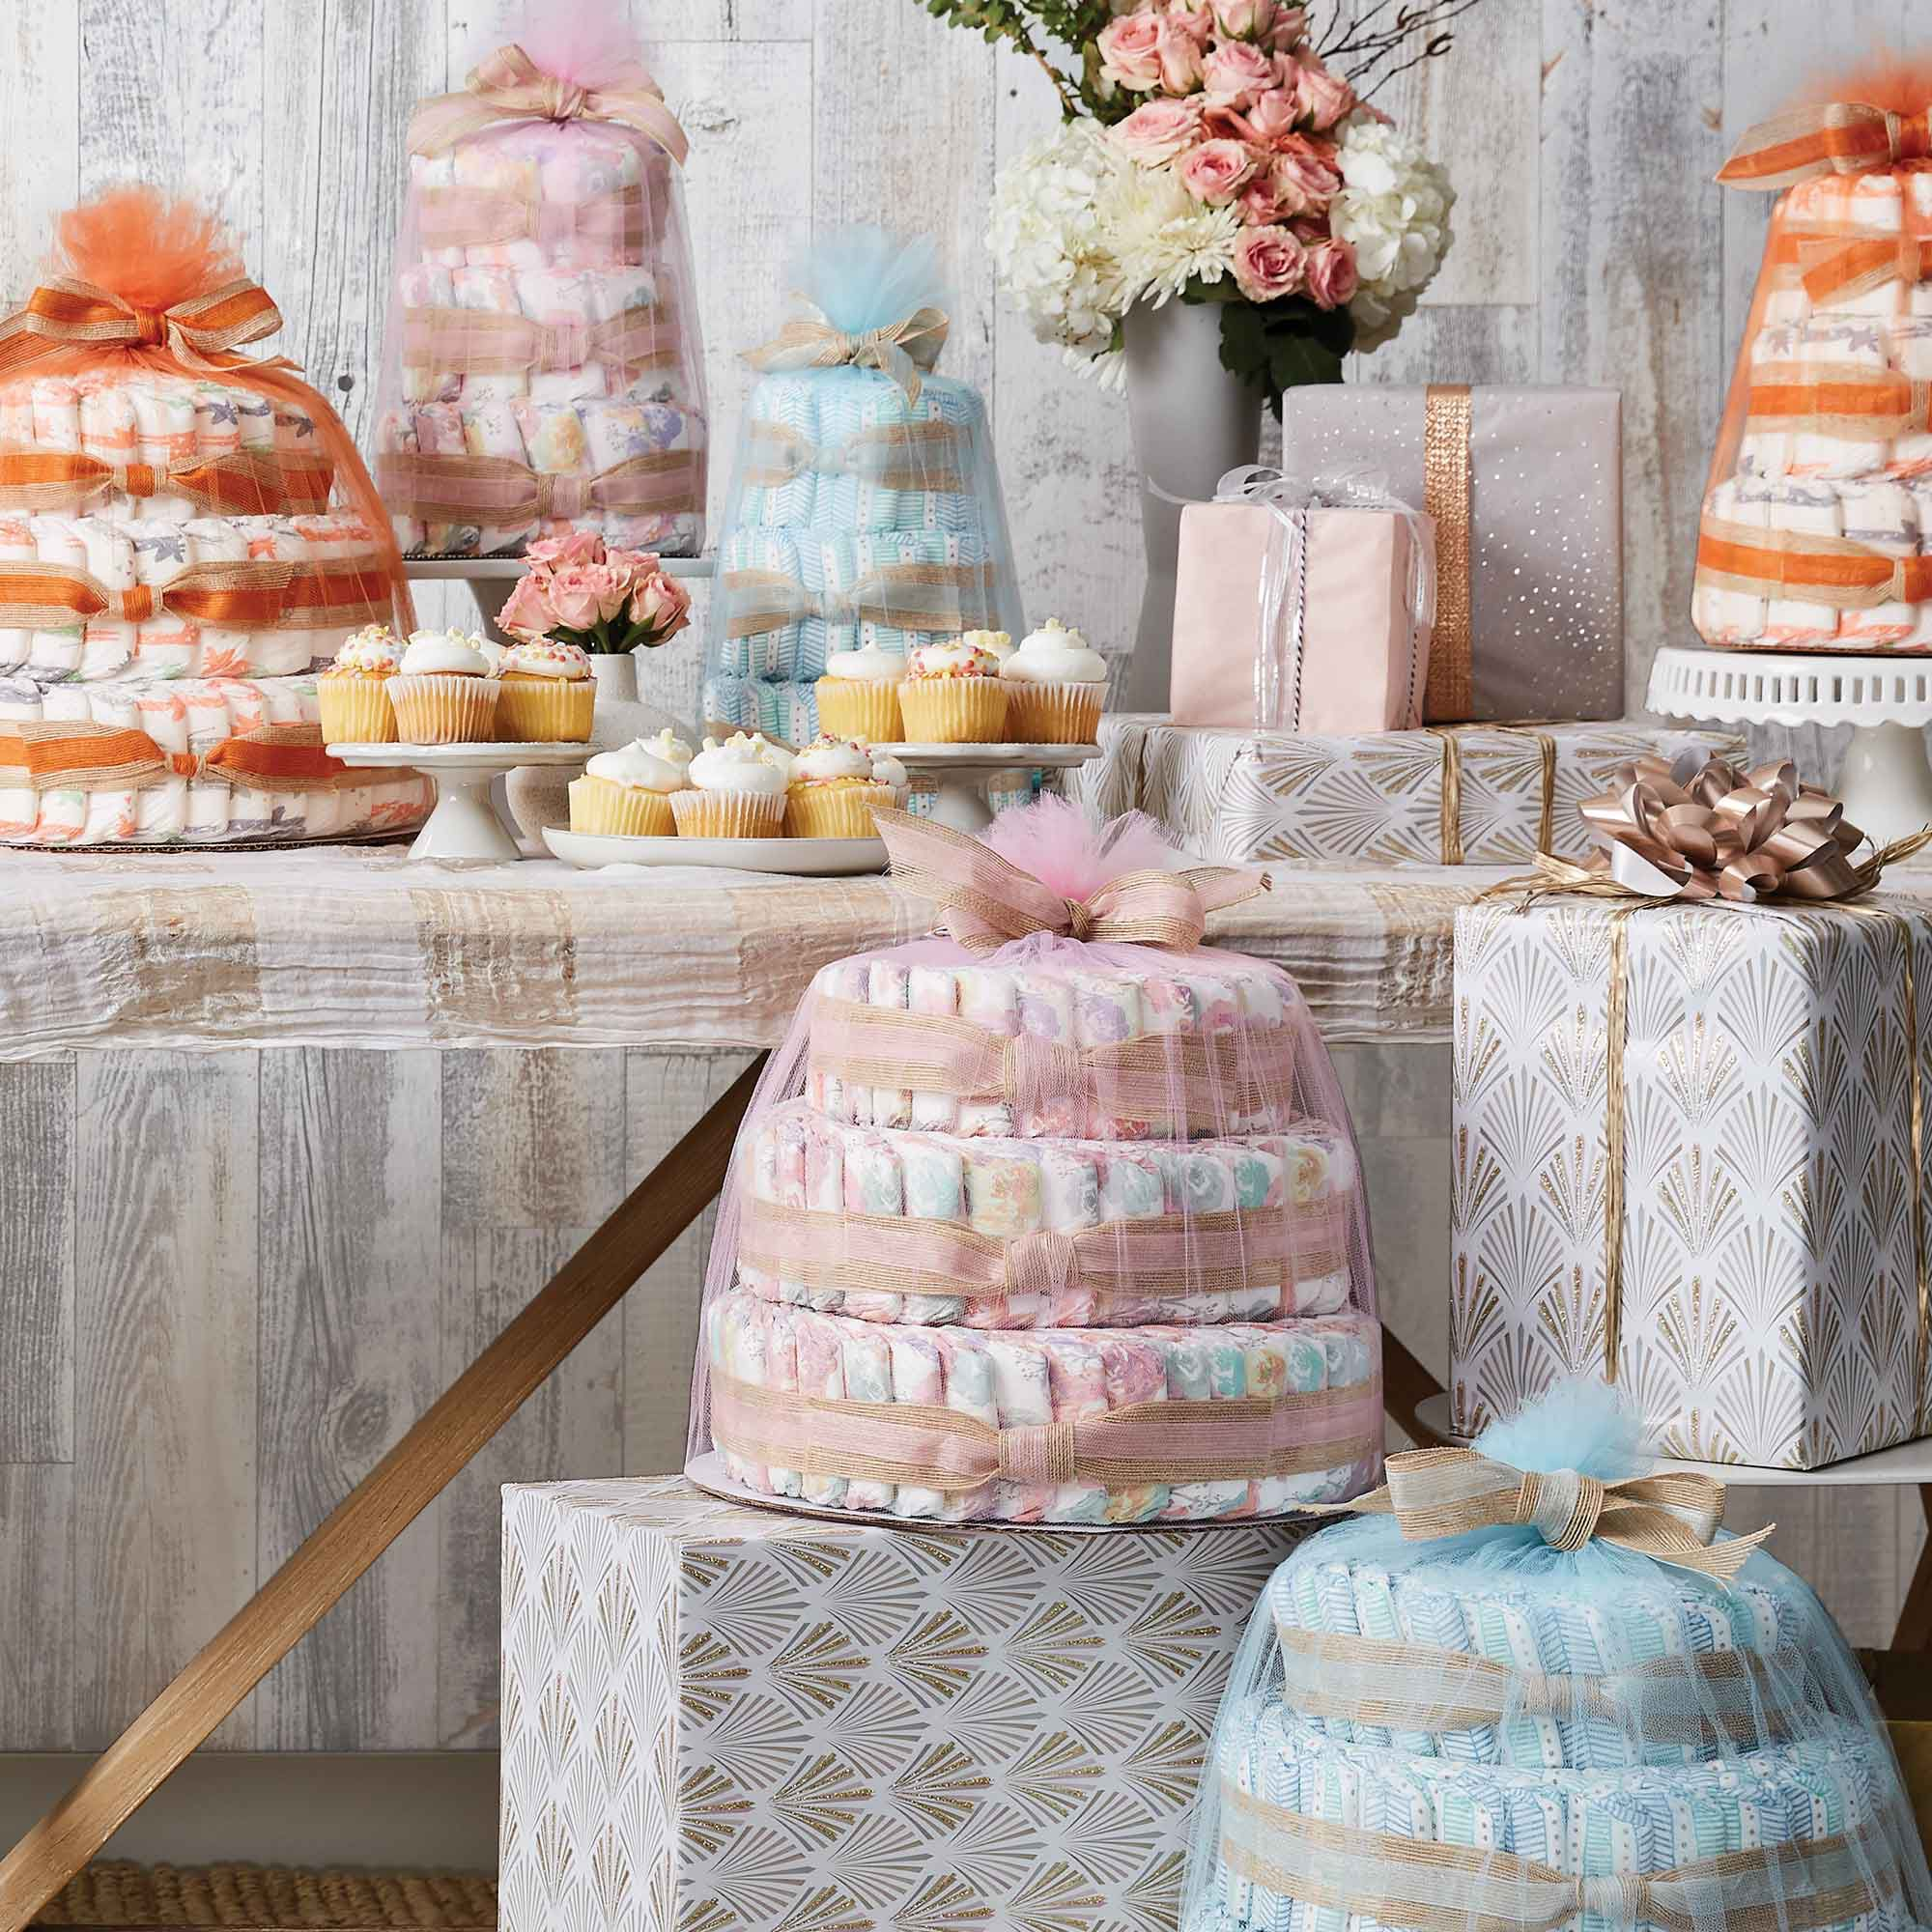 diaper cakes in baby shower setting